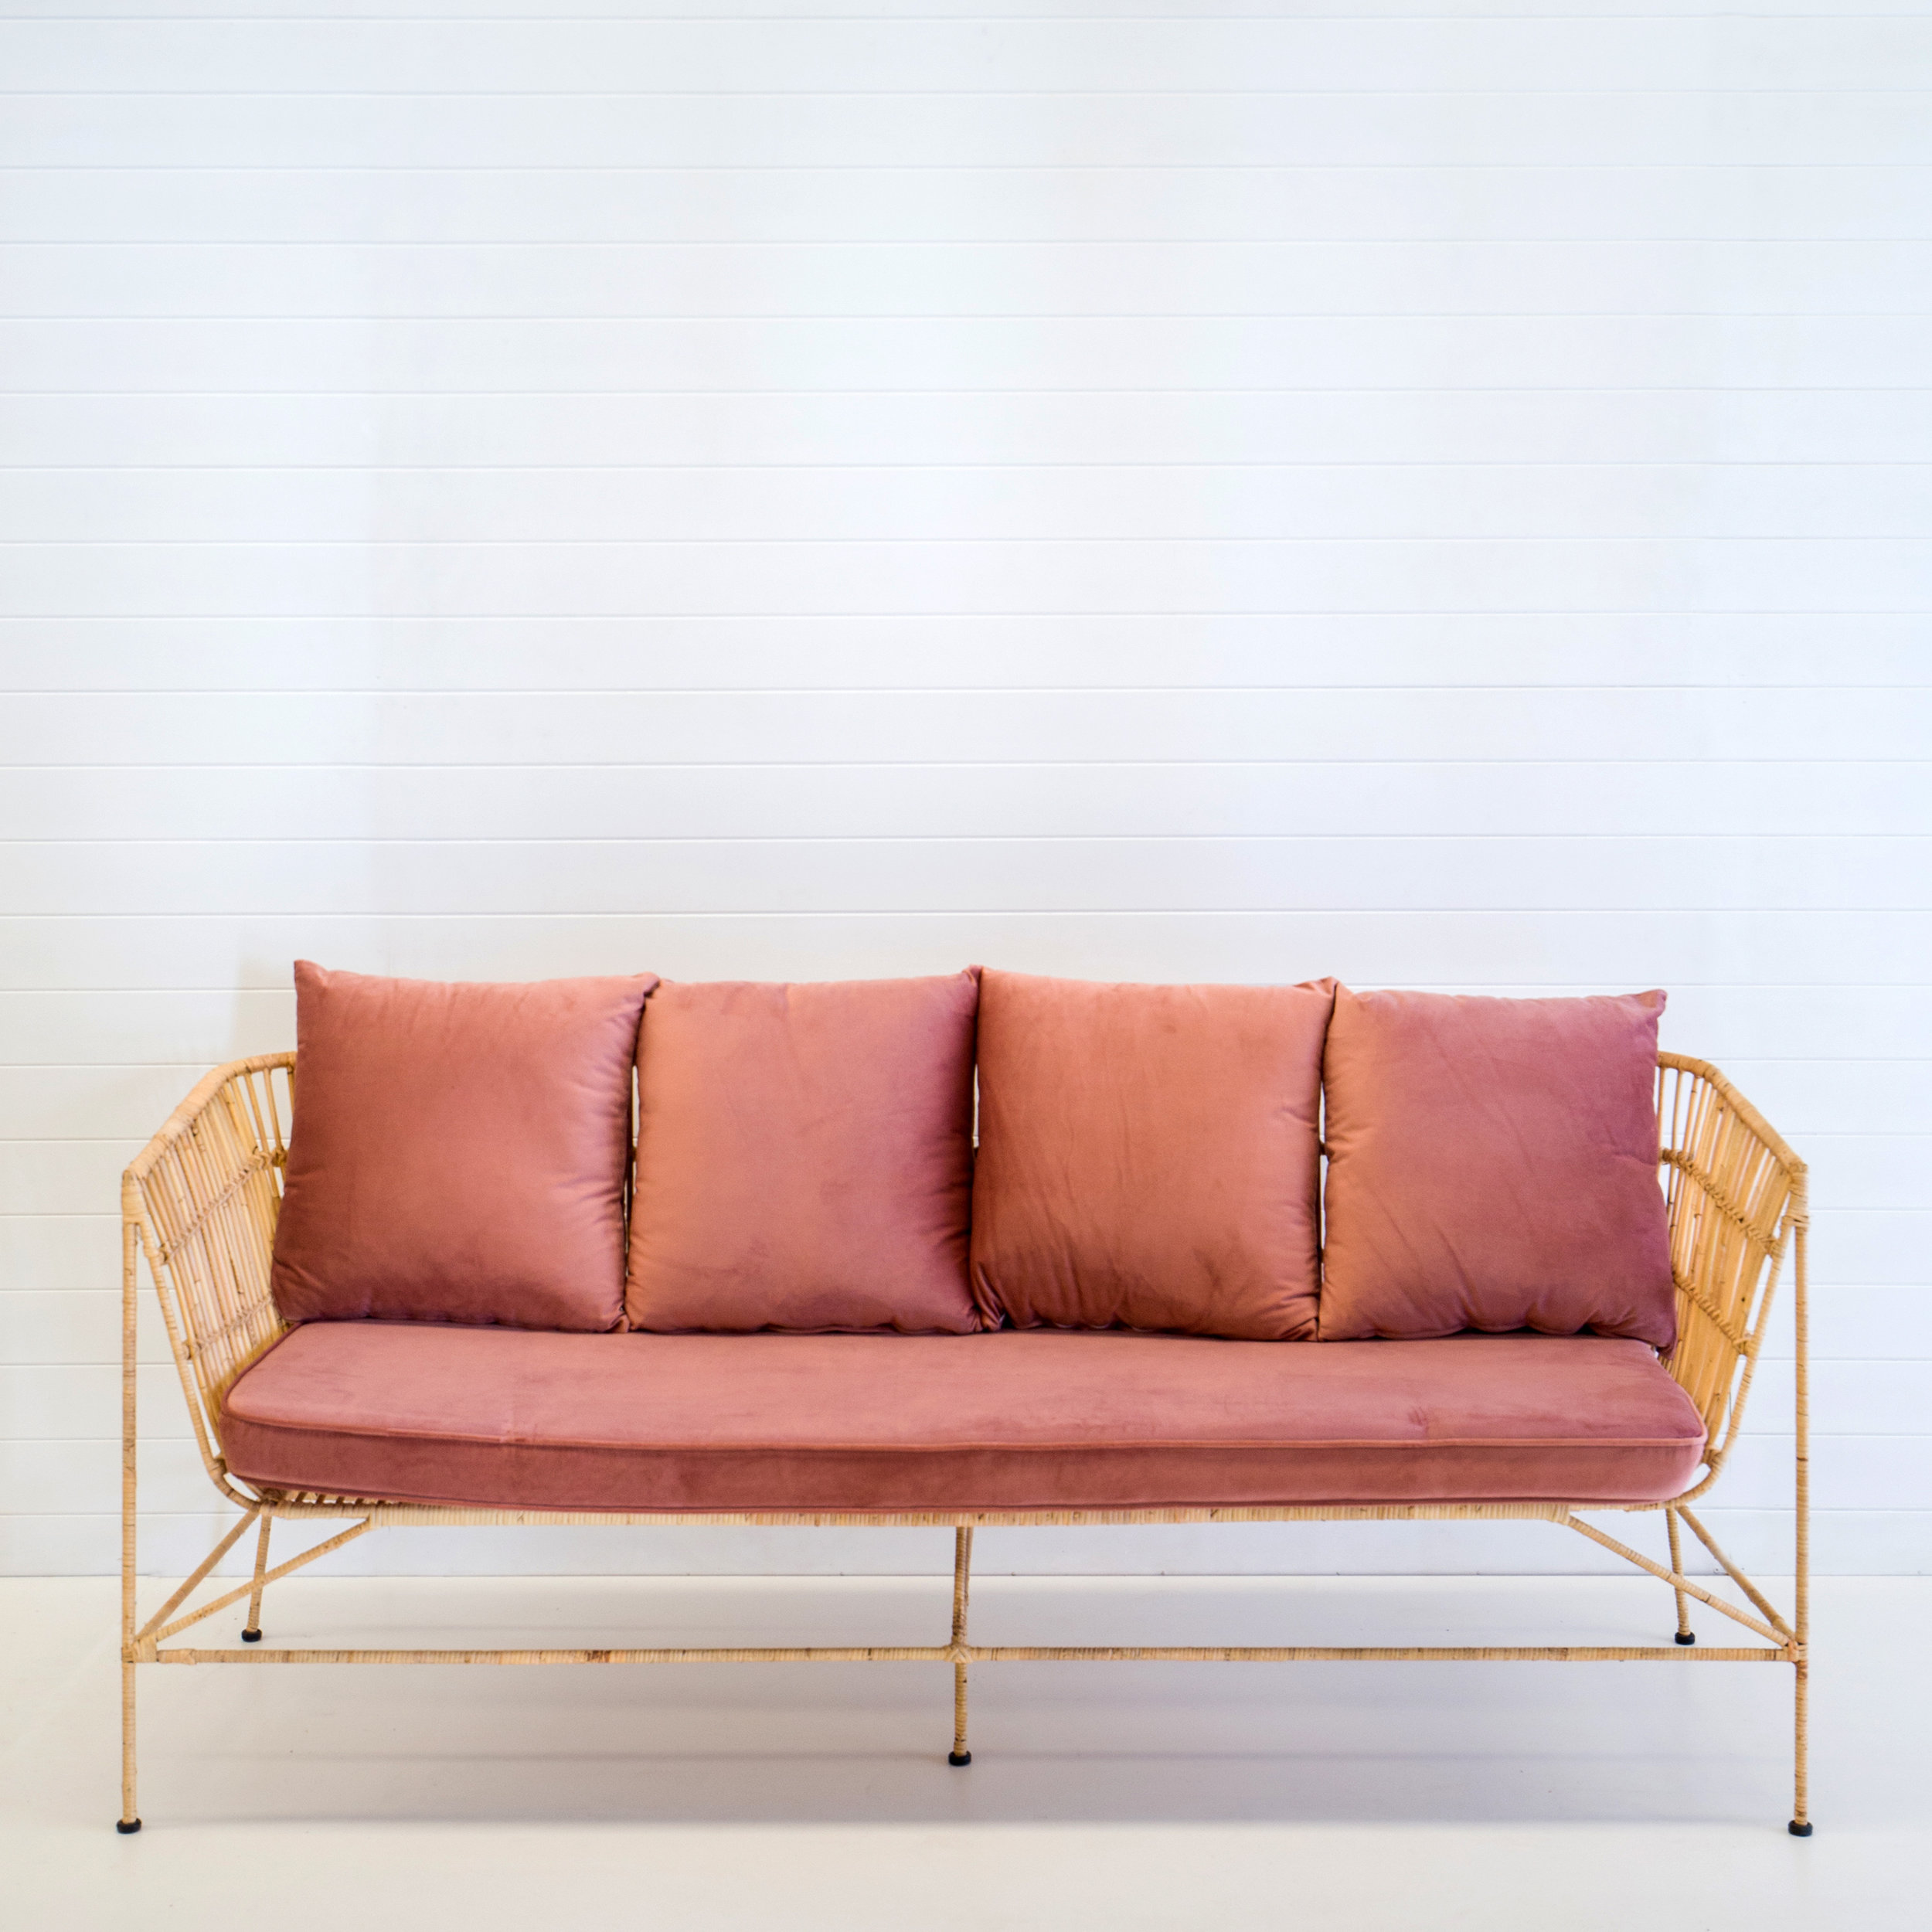 Indie natural sofa with dusty pink cushions